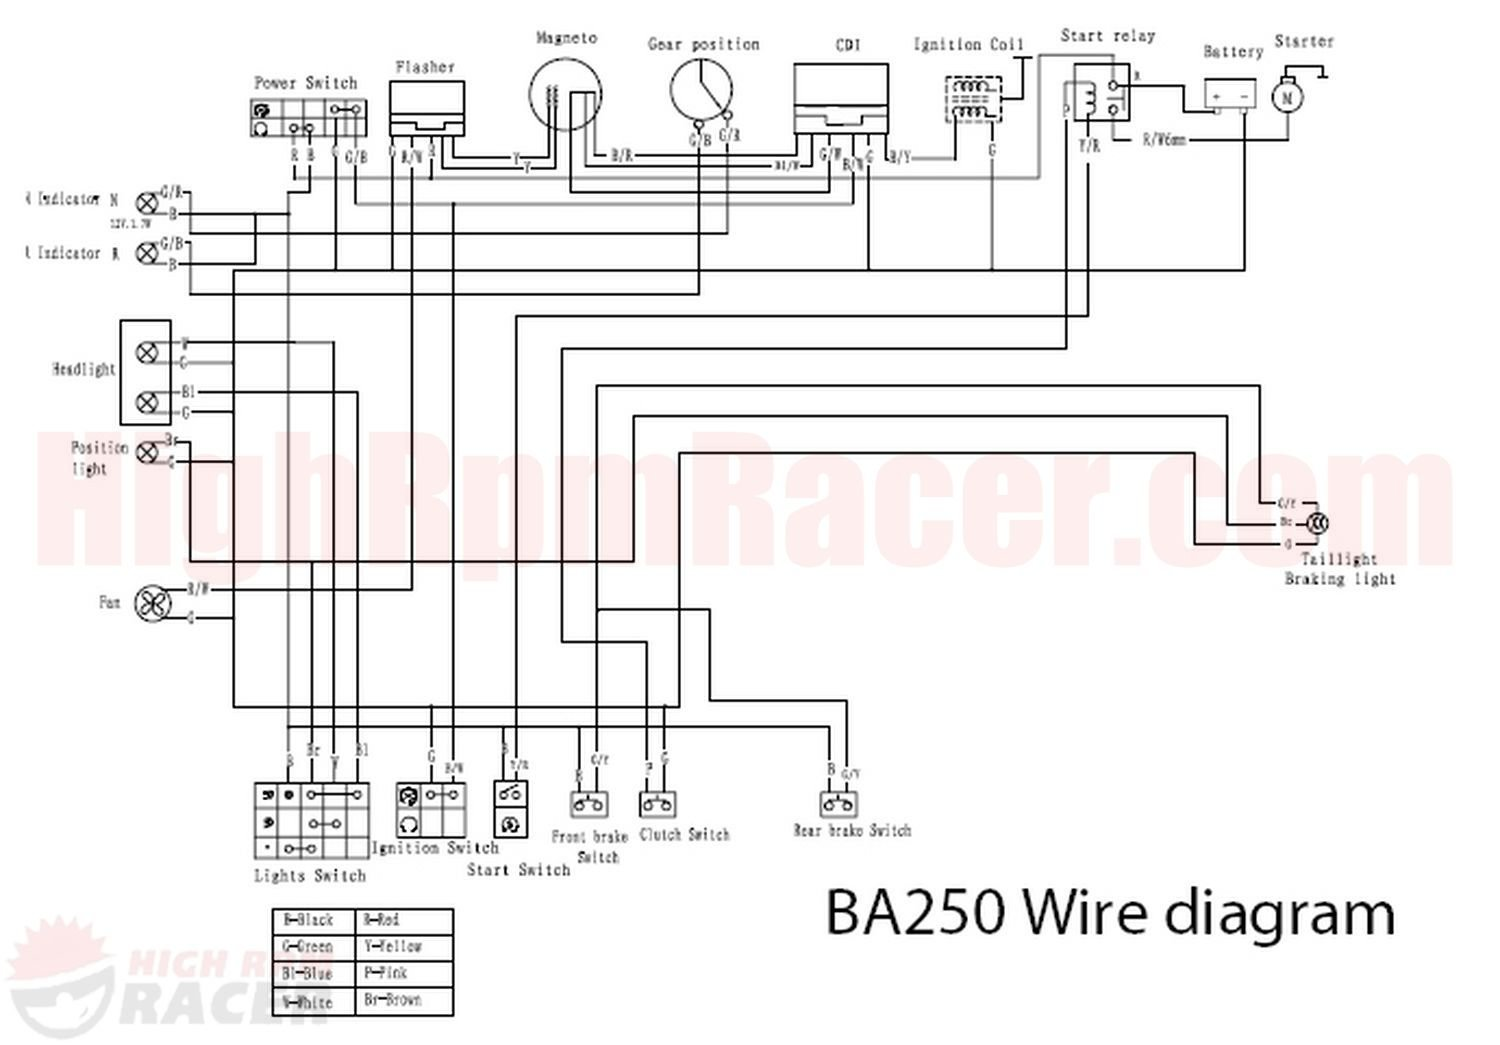 baja250_wd loncin 200cc atv wiring diagram wiring diagram simonand loncin 110 atv wiring diagram at crackthecode.co